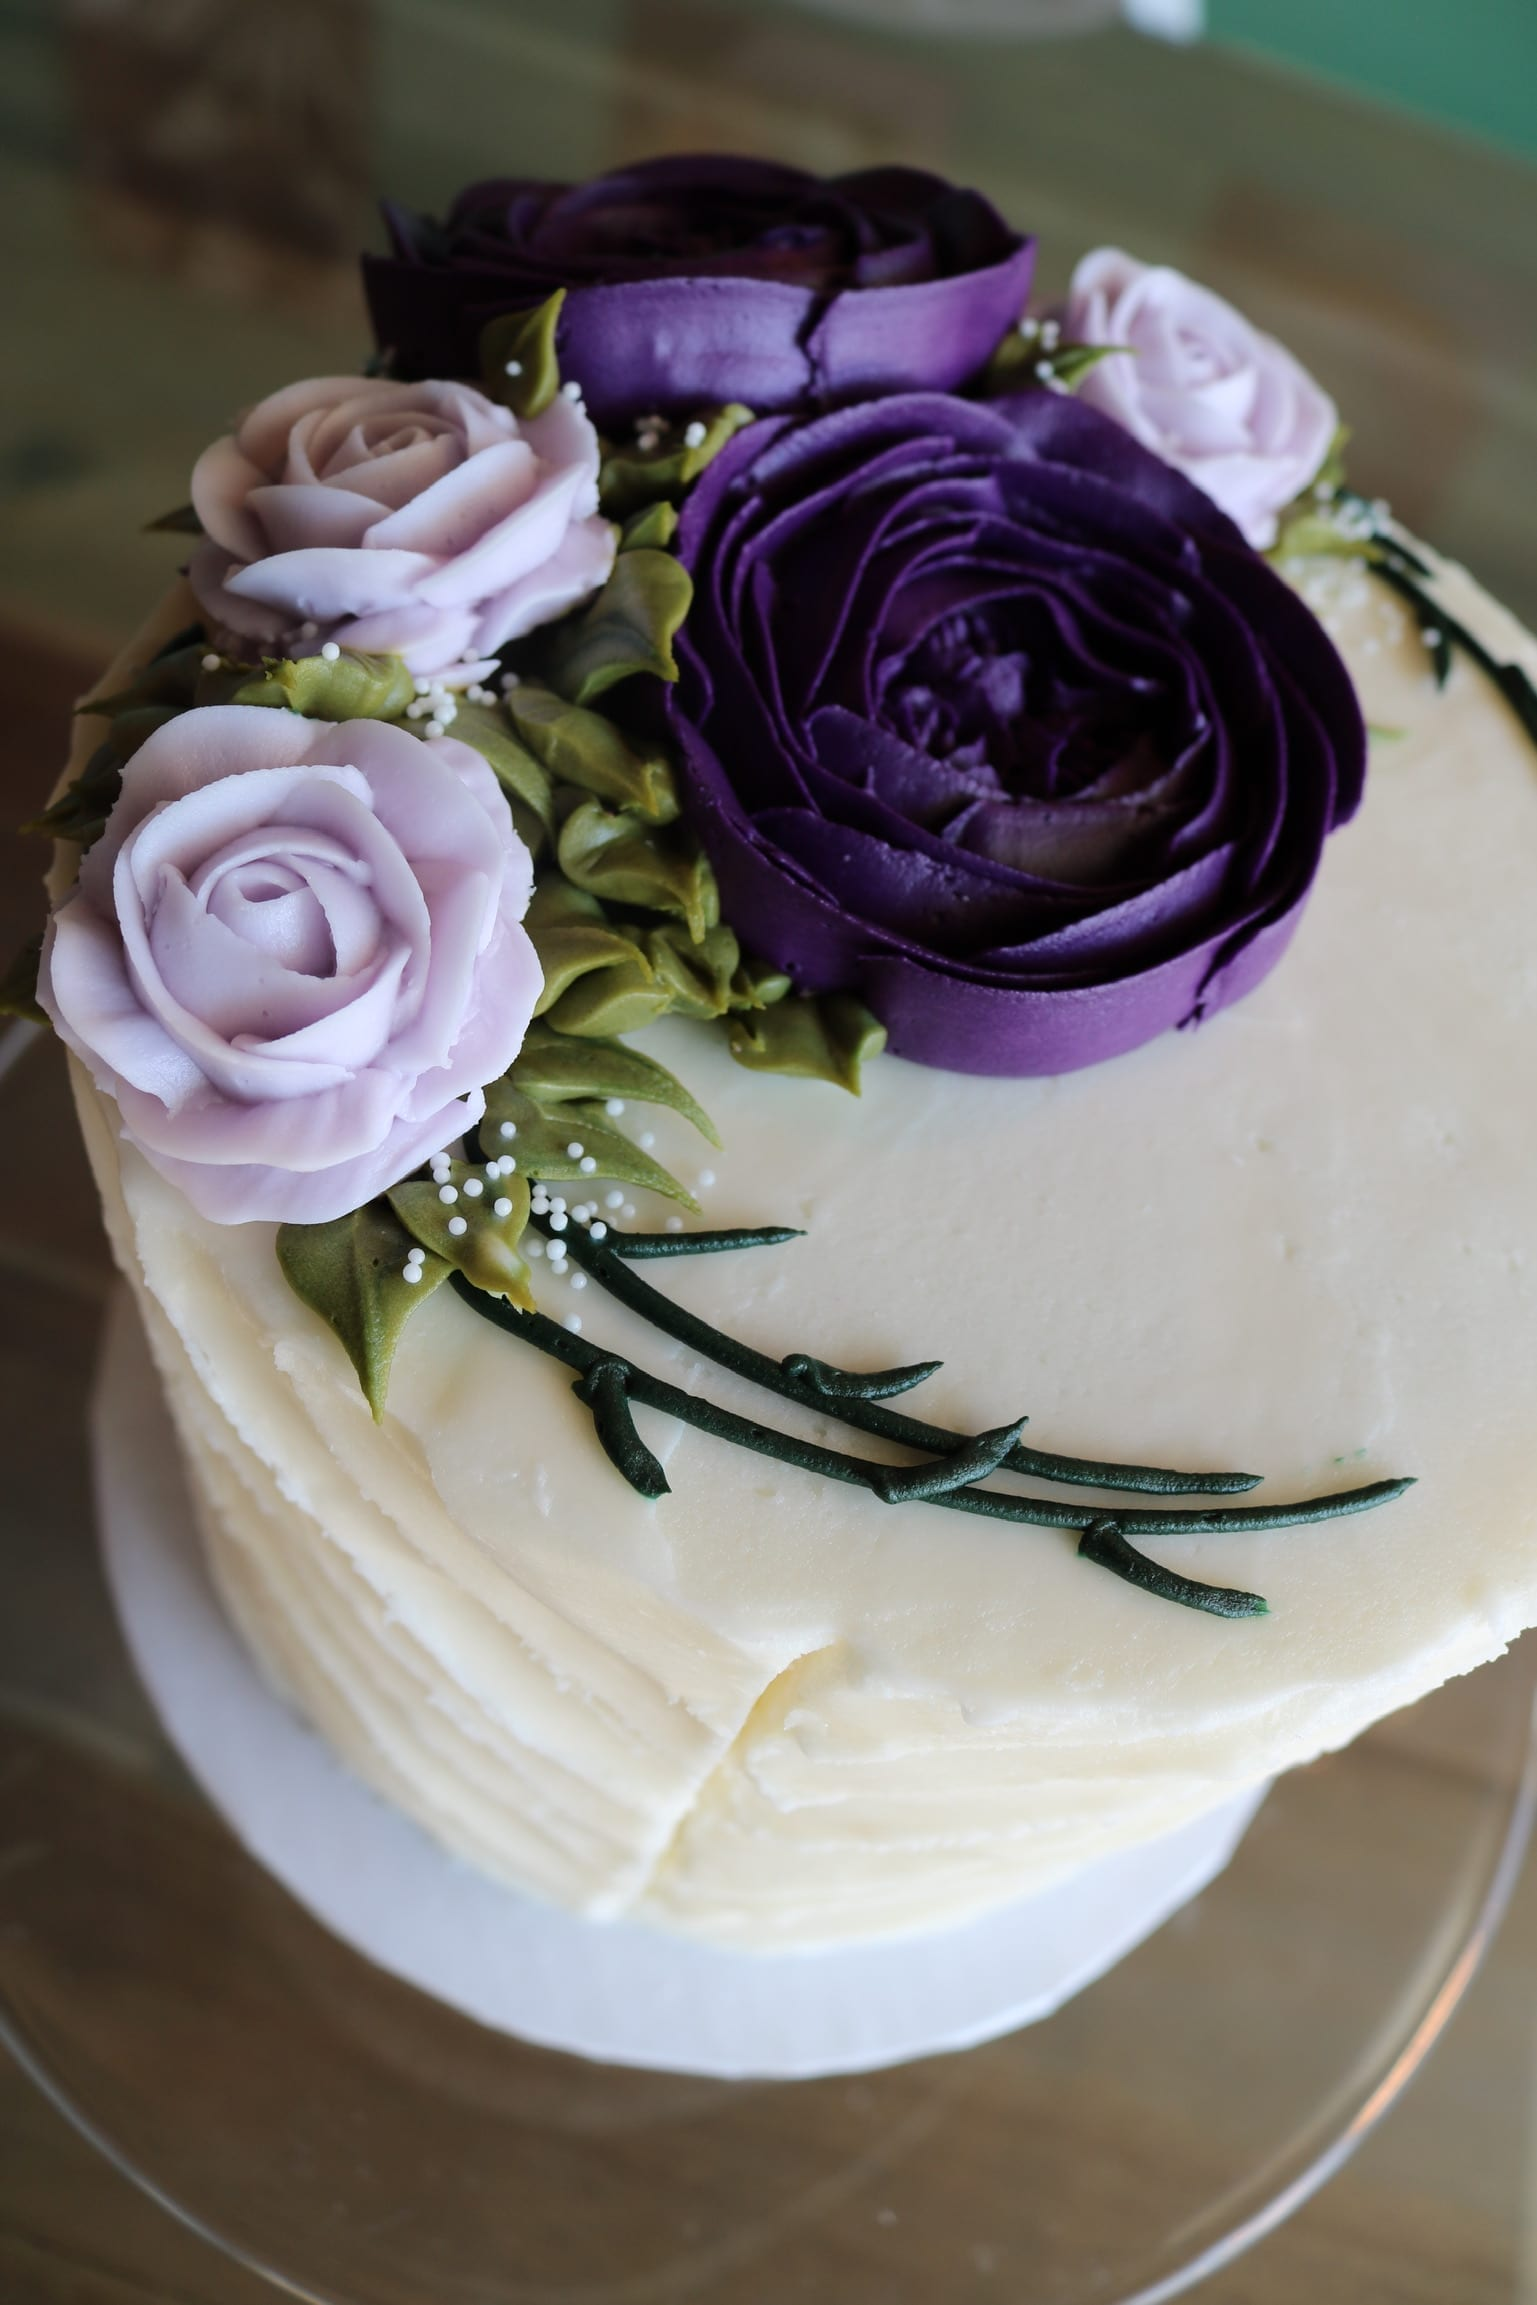 White Cake with Plum and Lavender Flowers | 3 Sweet Girls Cakery